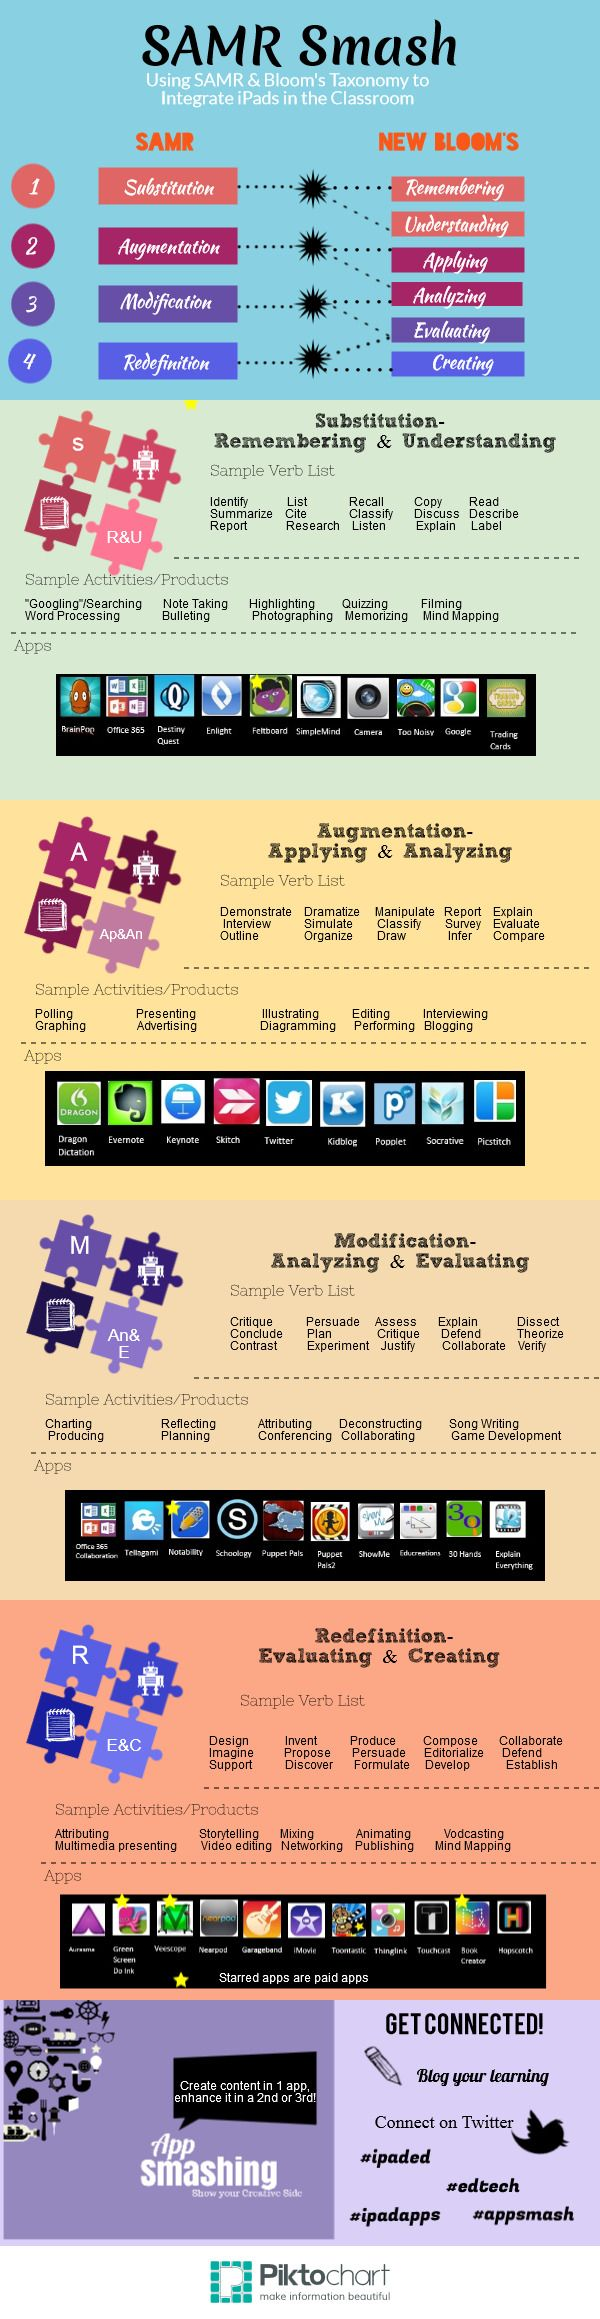 #SAMR Smash (#INFOGRAPHIC)